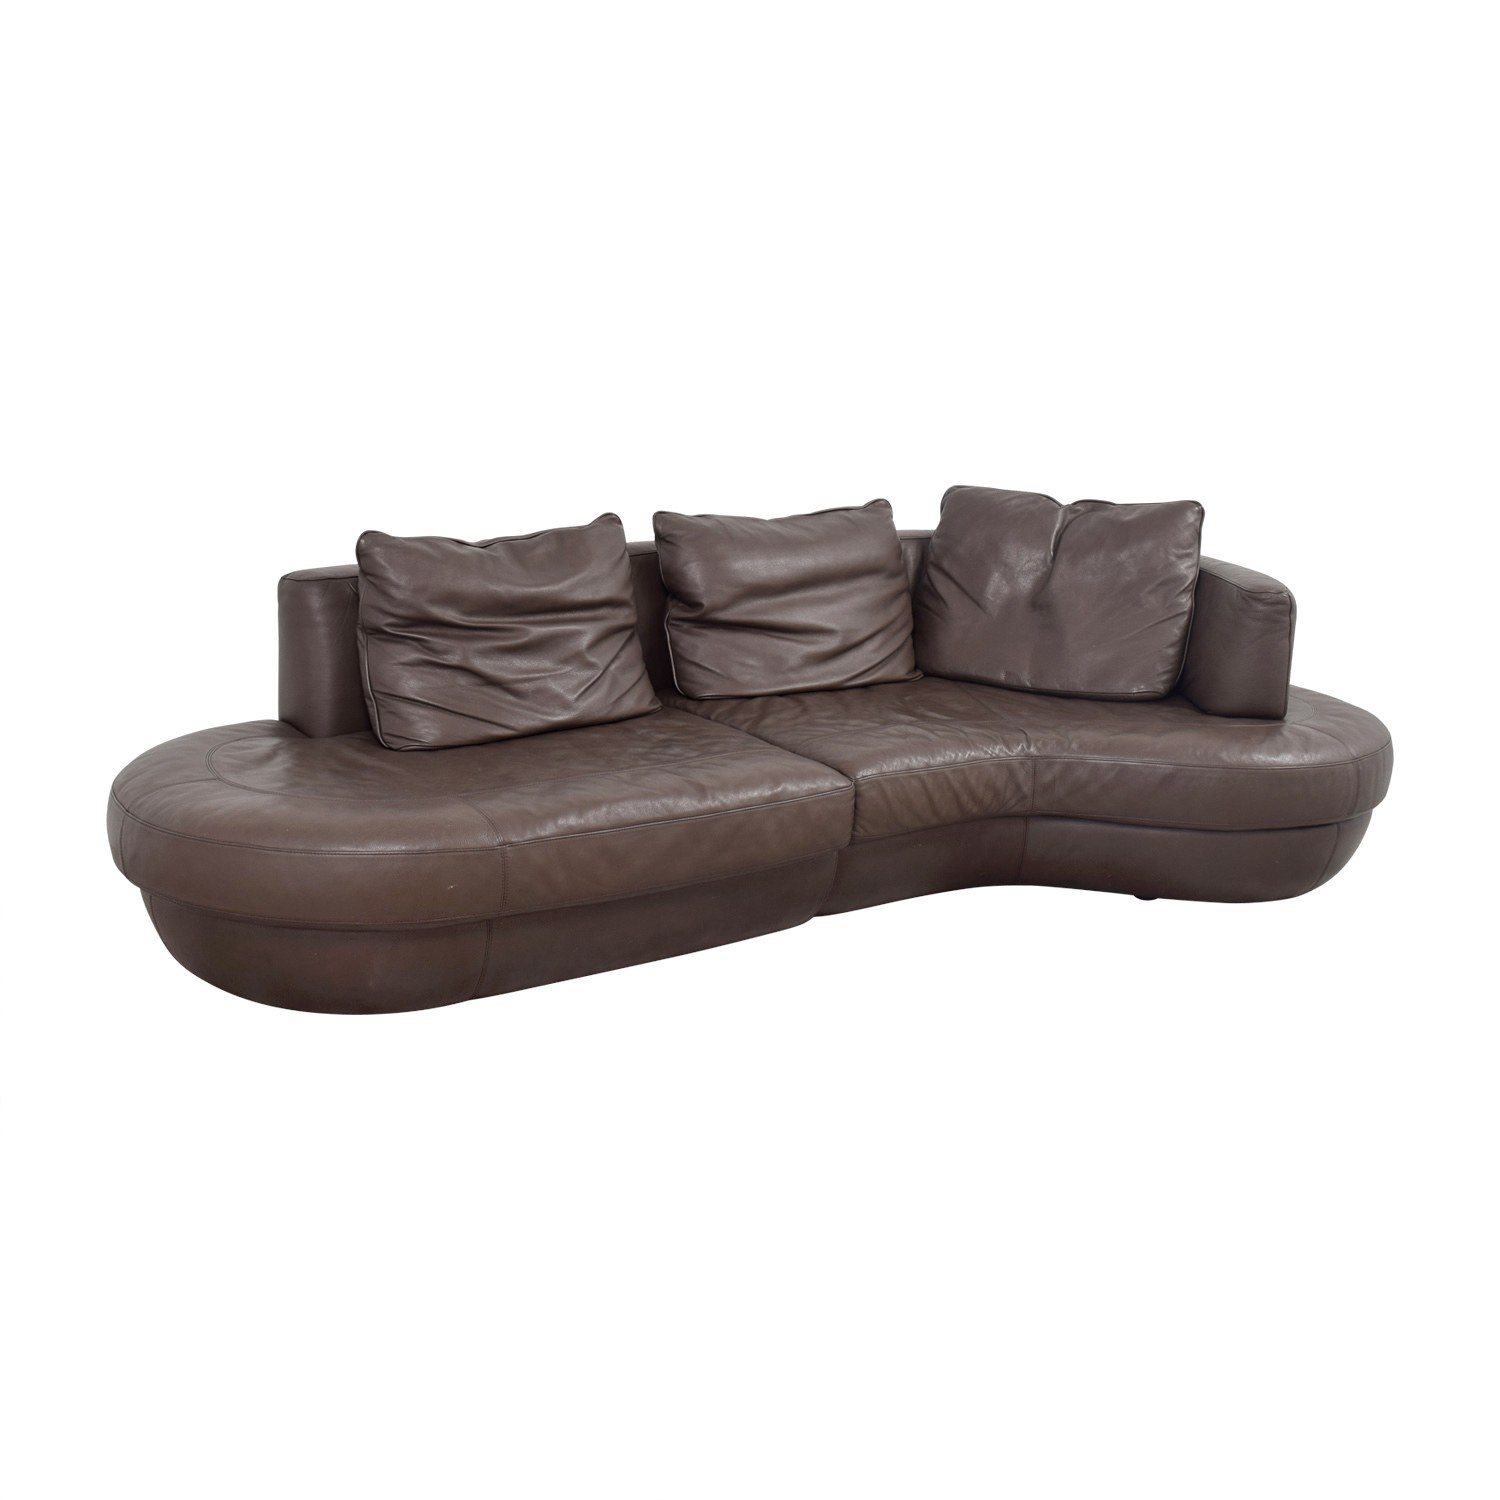 Curved Sofa Sectional Leather: Natuzzi Natuzzi Rondo Brown Leather Curved